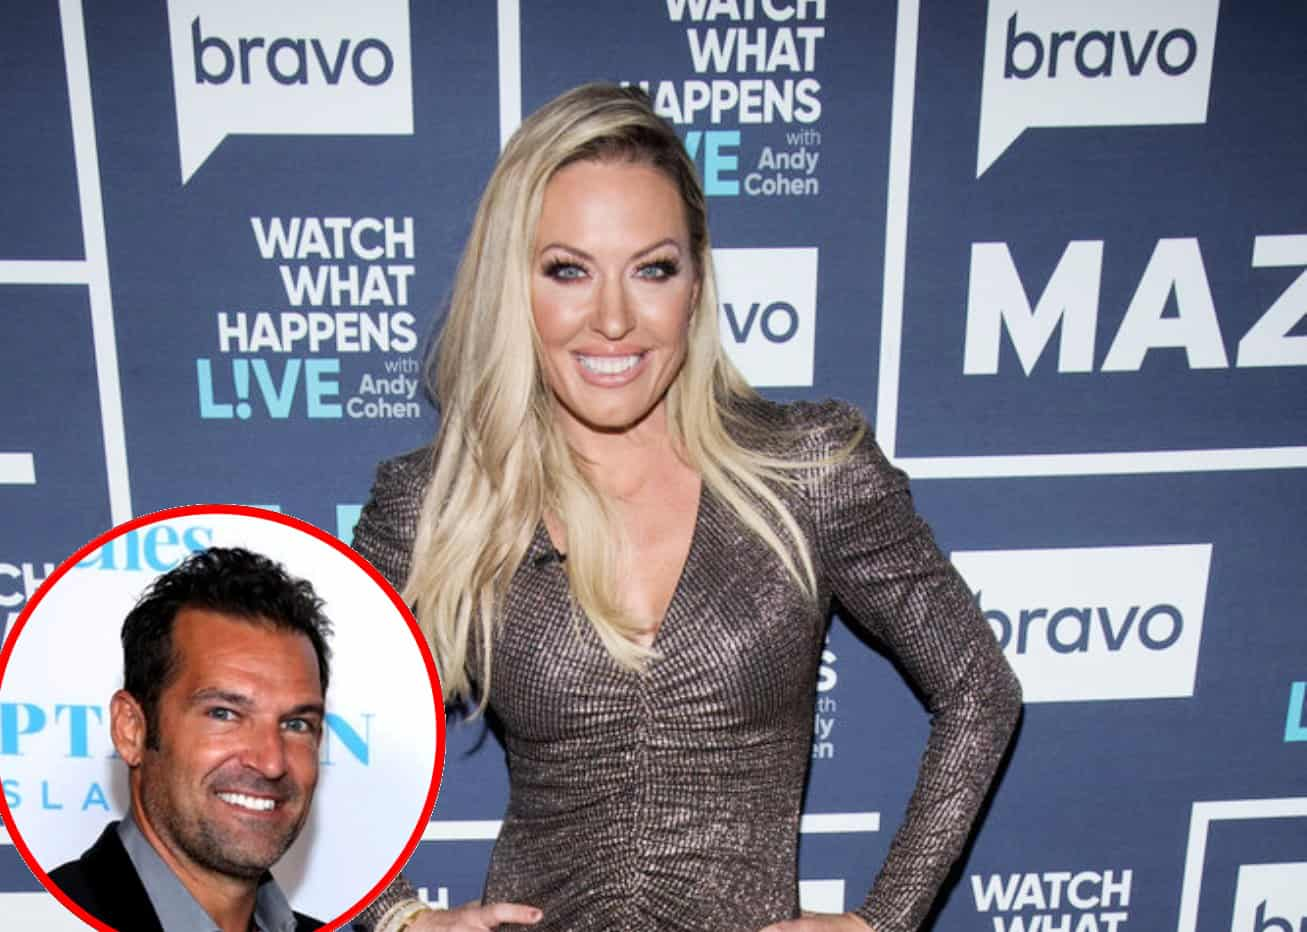 RHOC's Braunwyn Windham-Burke Opens Up About Abuse in Marriage and Hitting Husband Sean, Blames Paparazzi Photos on Kelly Dodd and Addresses Sex Shop Visit